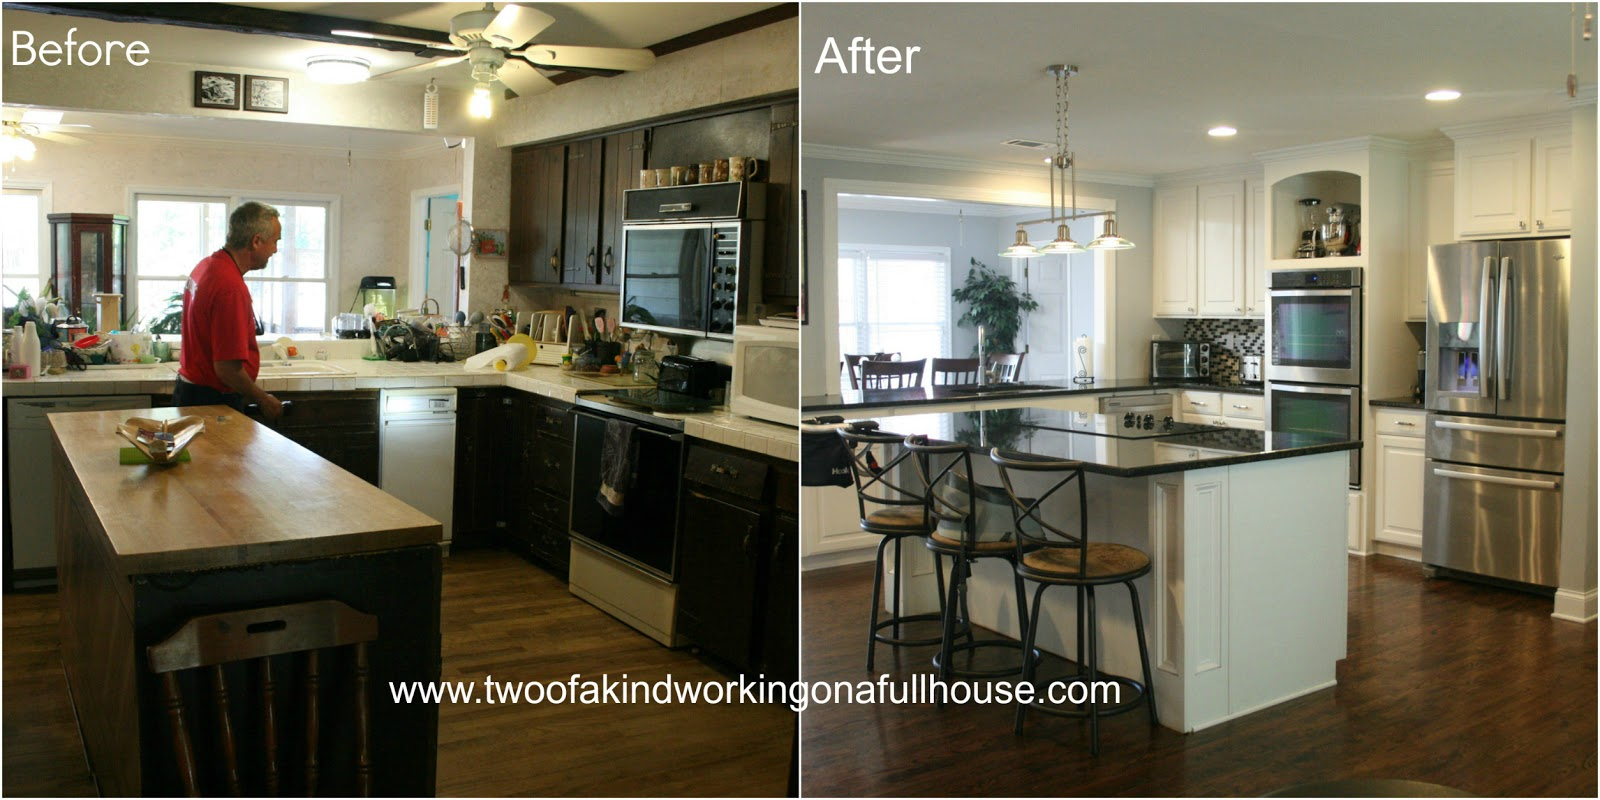 wordless wednesday beforeafter kitchen remodel pictures - Before And After Home Remodel